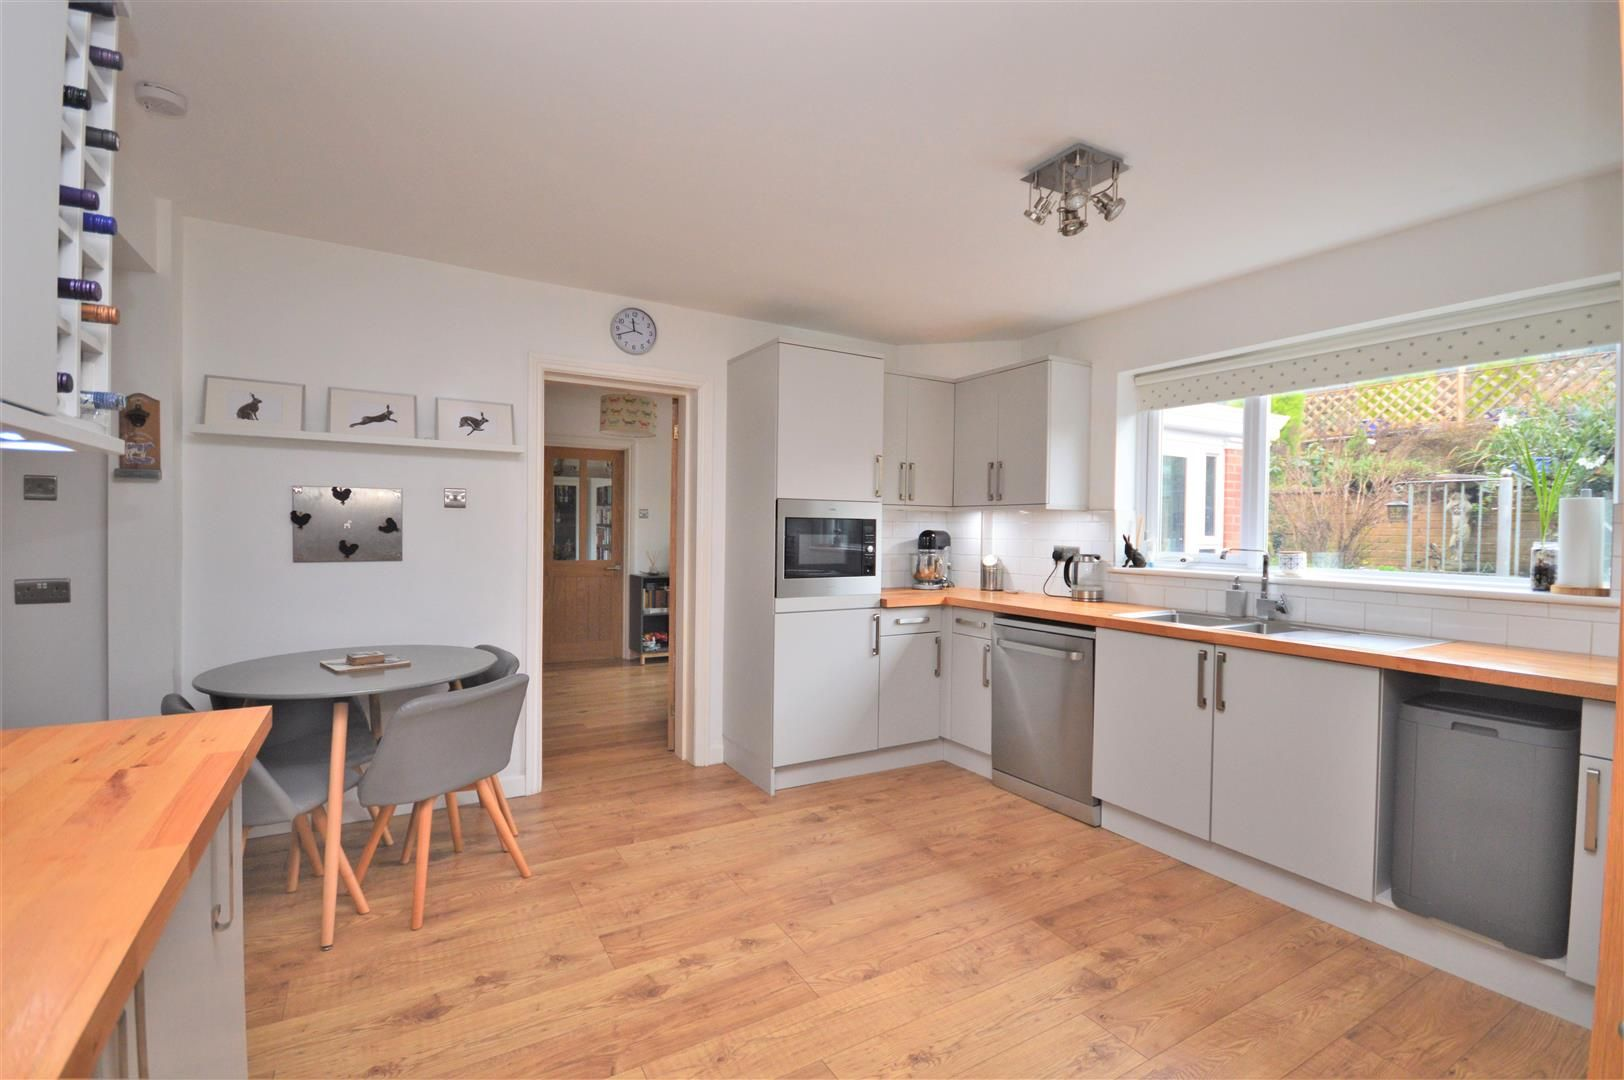 4 bed detached for sale in Kings Caple 2